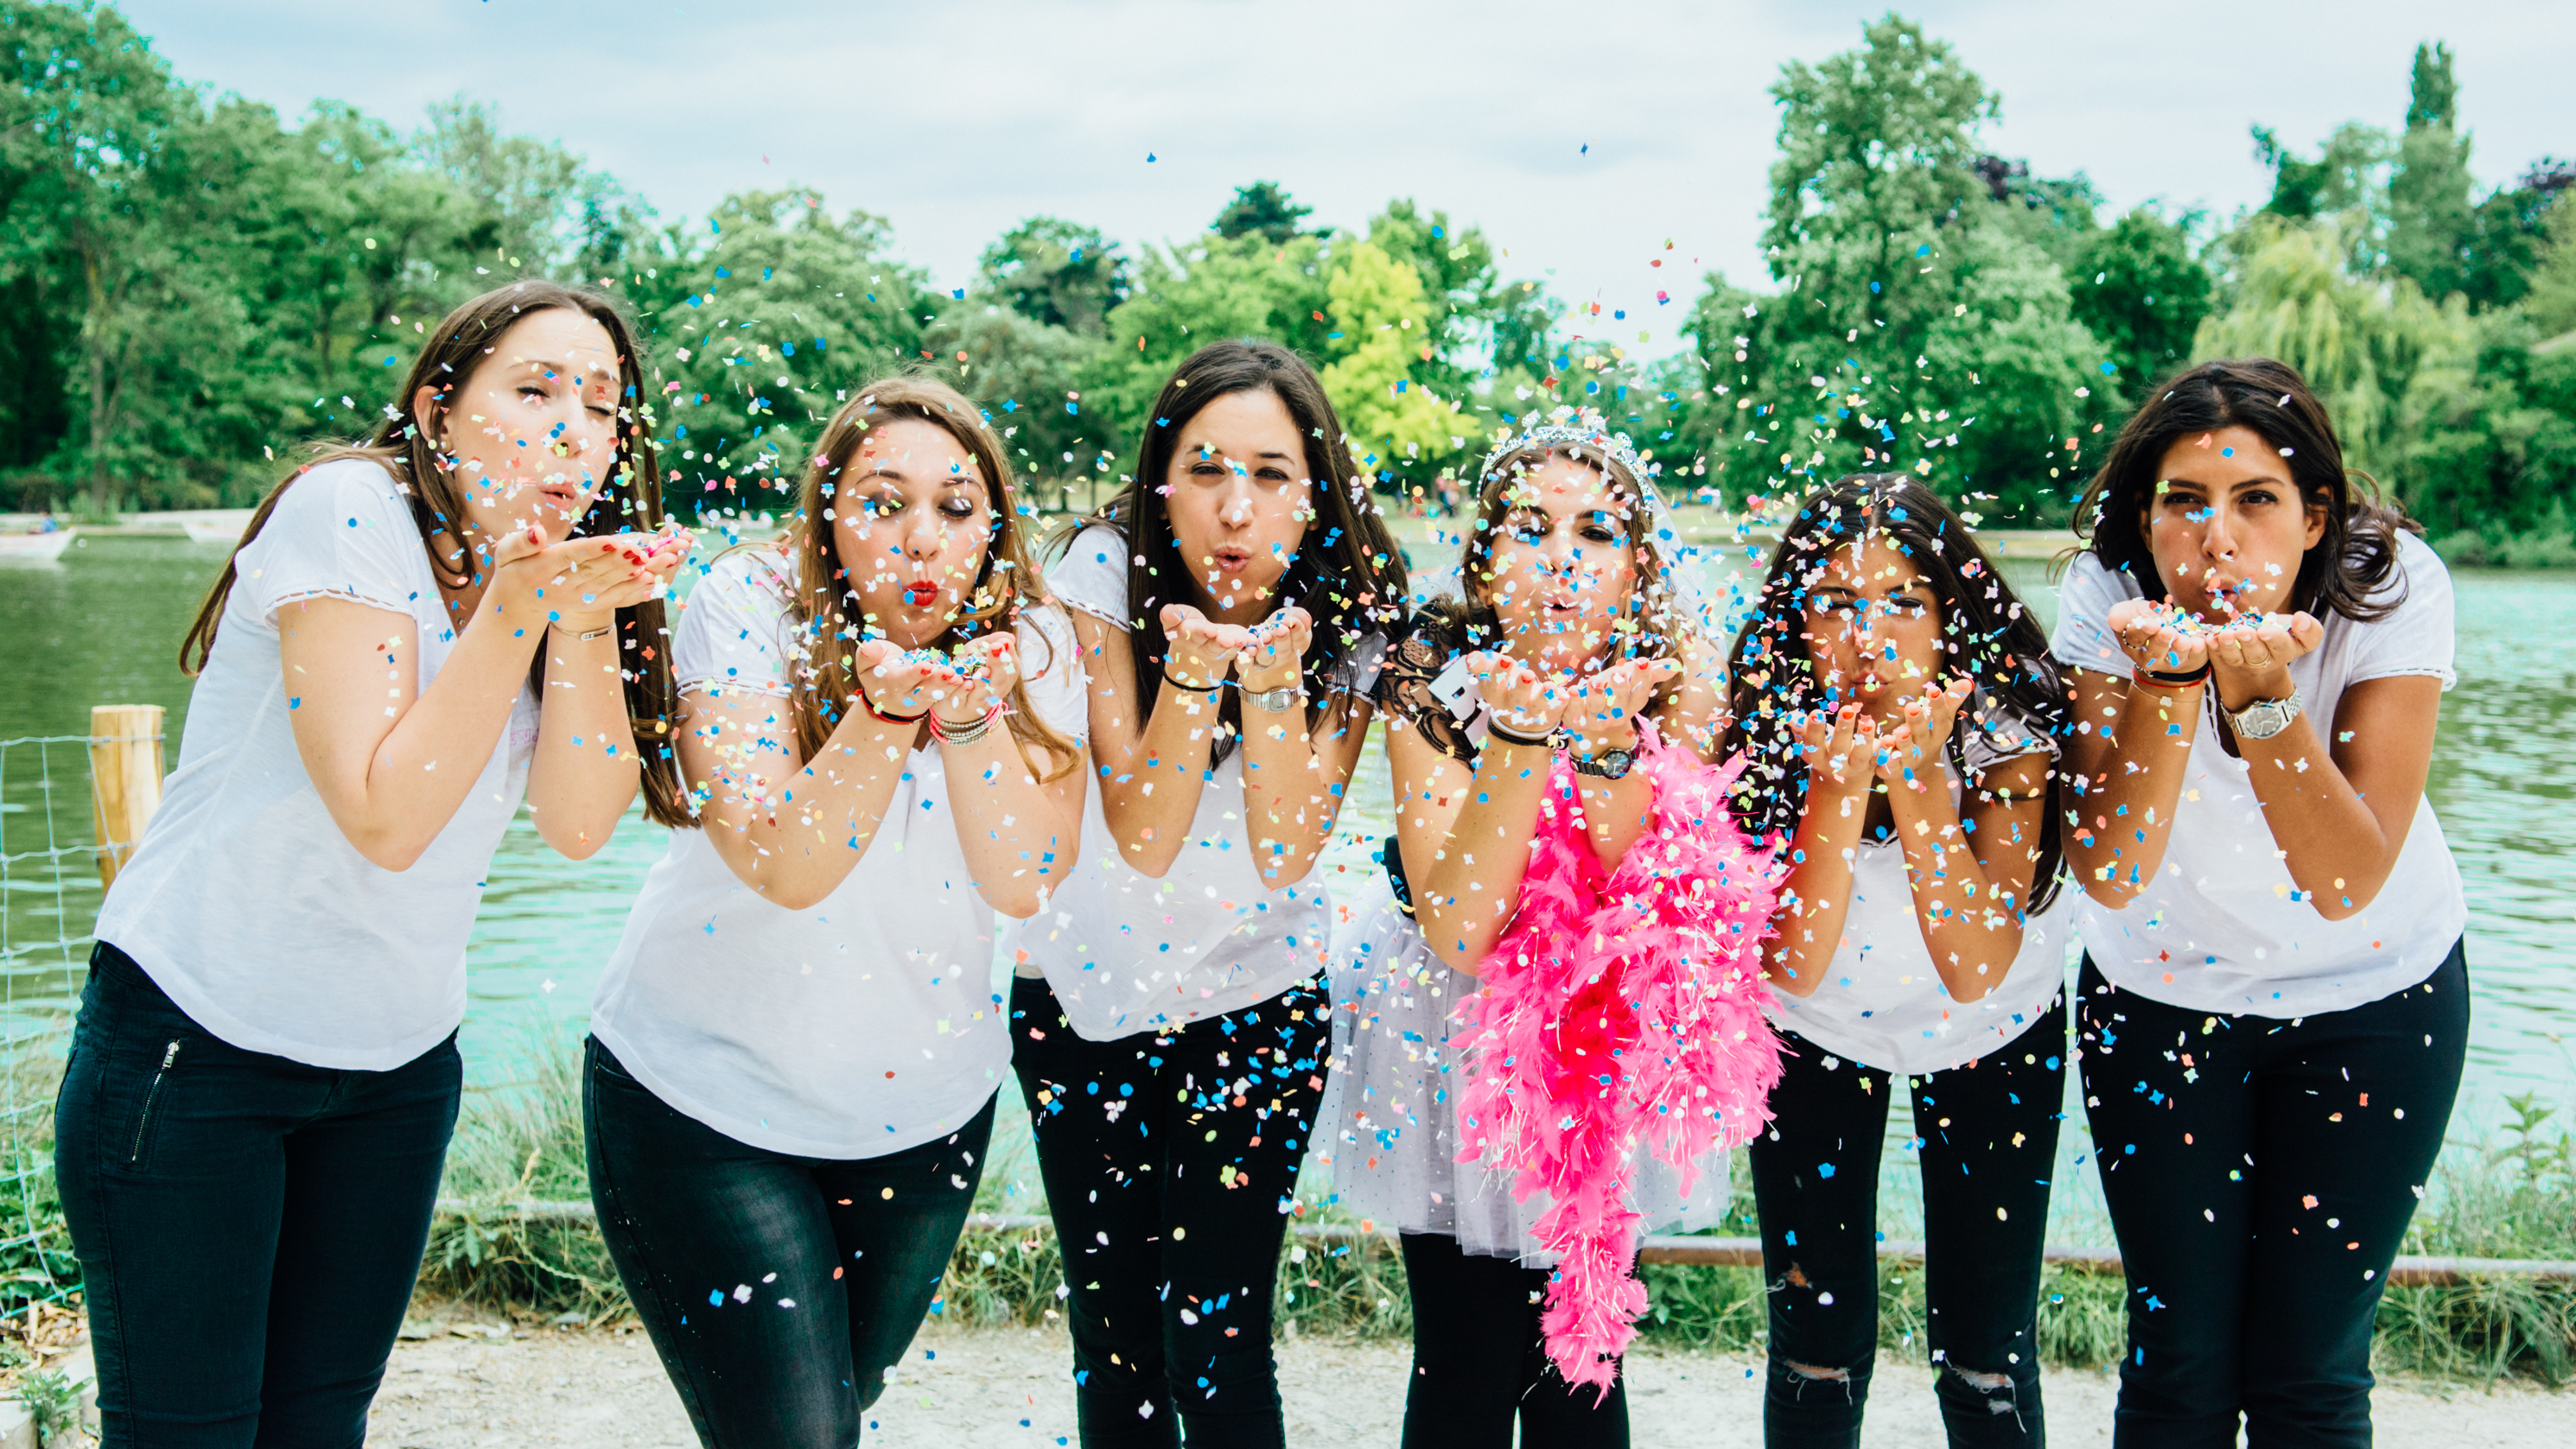 Funny Bachelorette Party